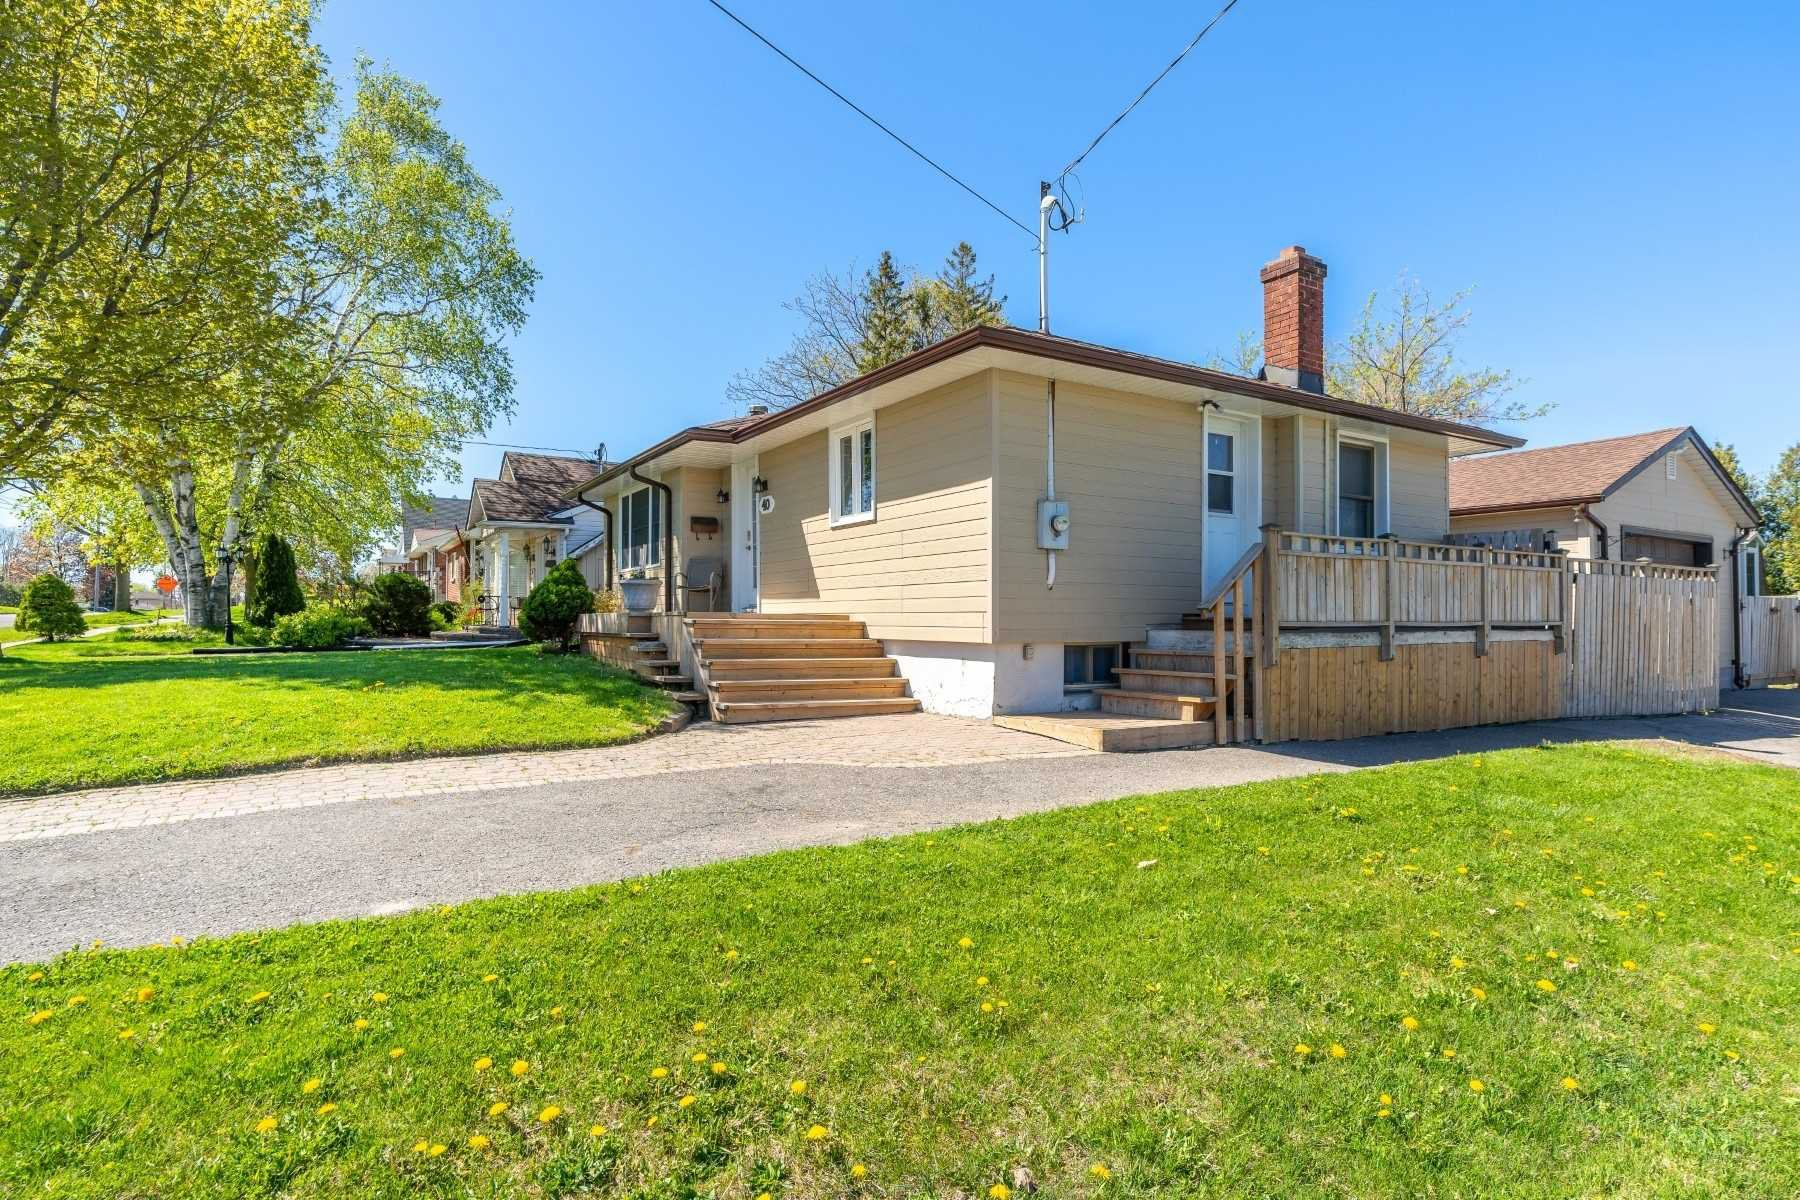 Photo 13: Photos: 40 Eastlawn Street in Oshawa: Donevan House (Bungalow) for sale : MLS®# E4769026